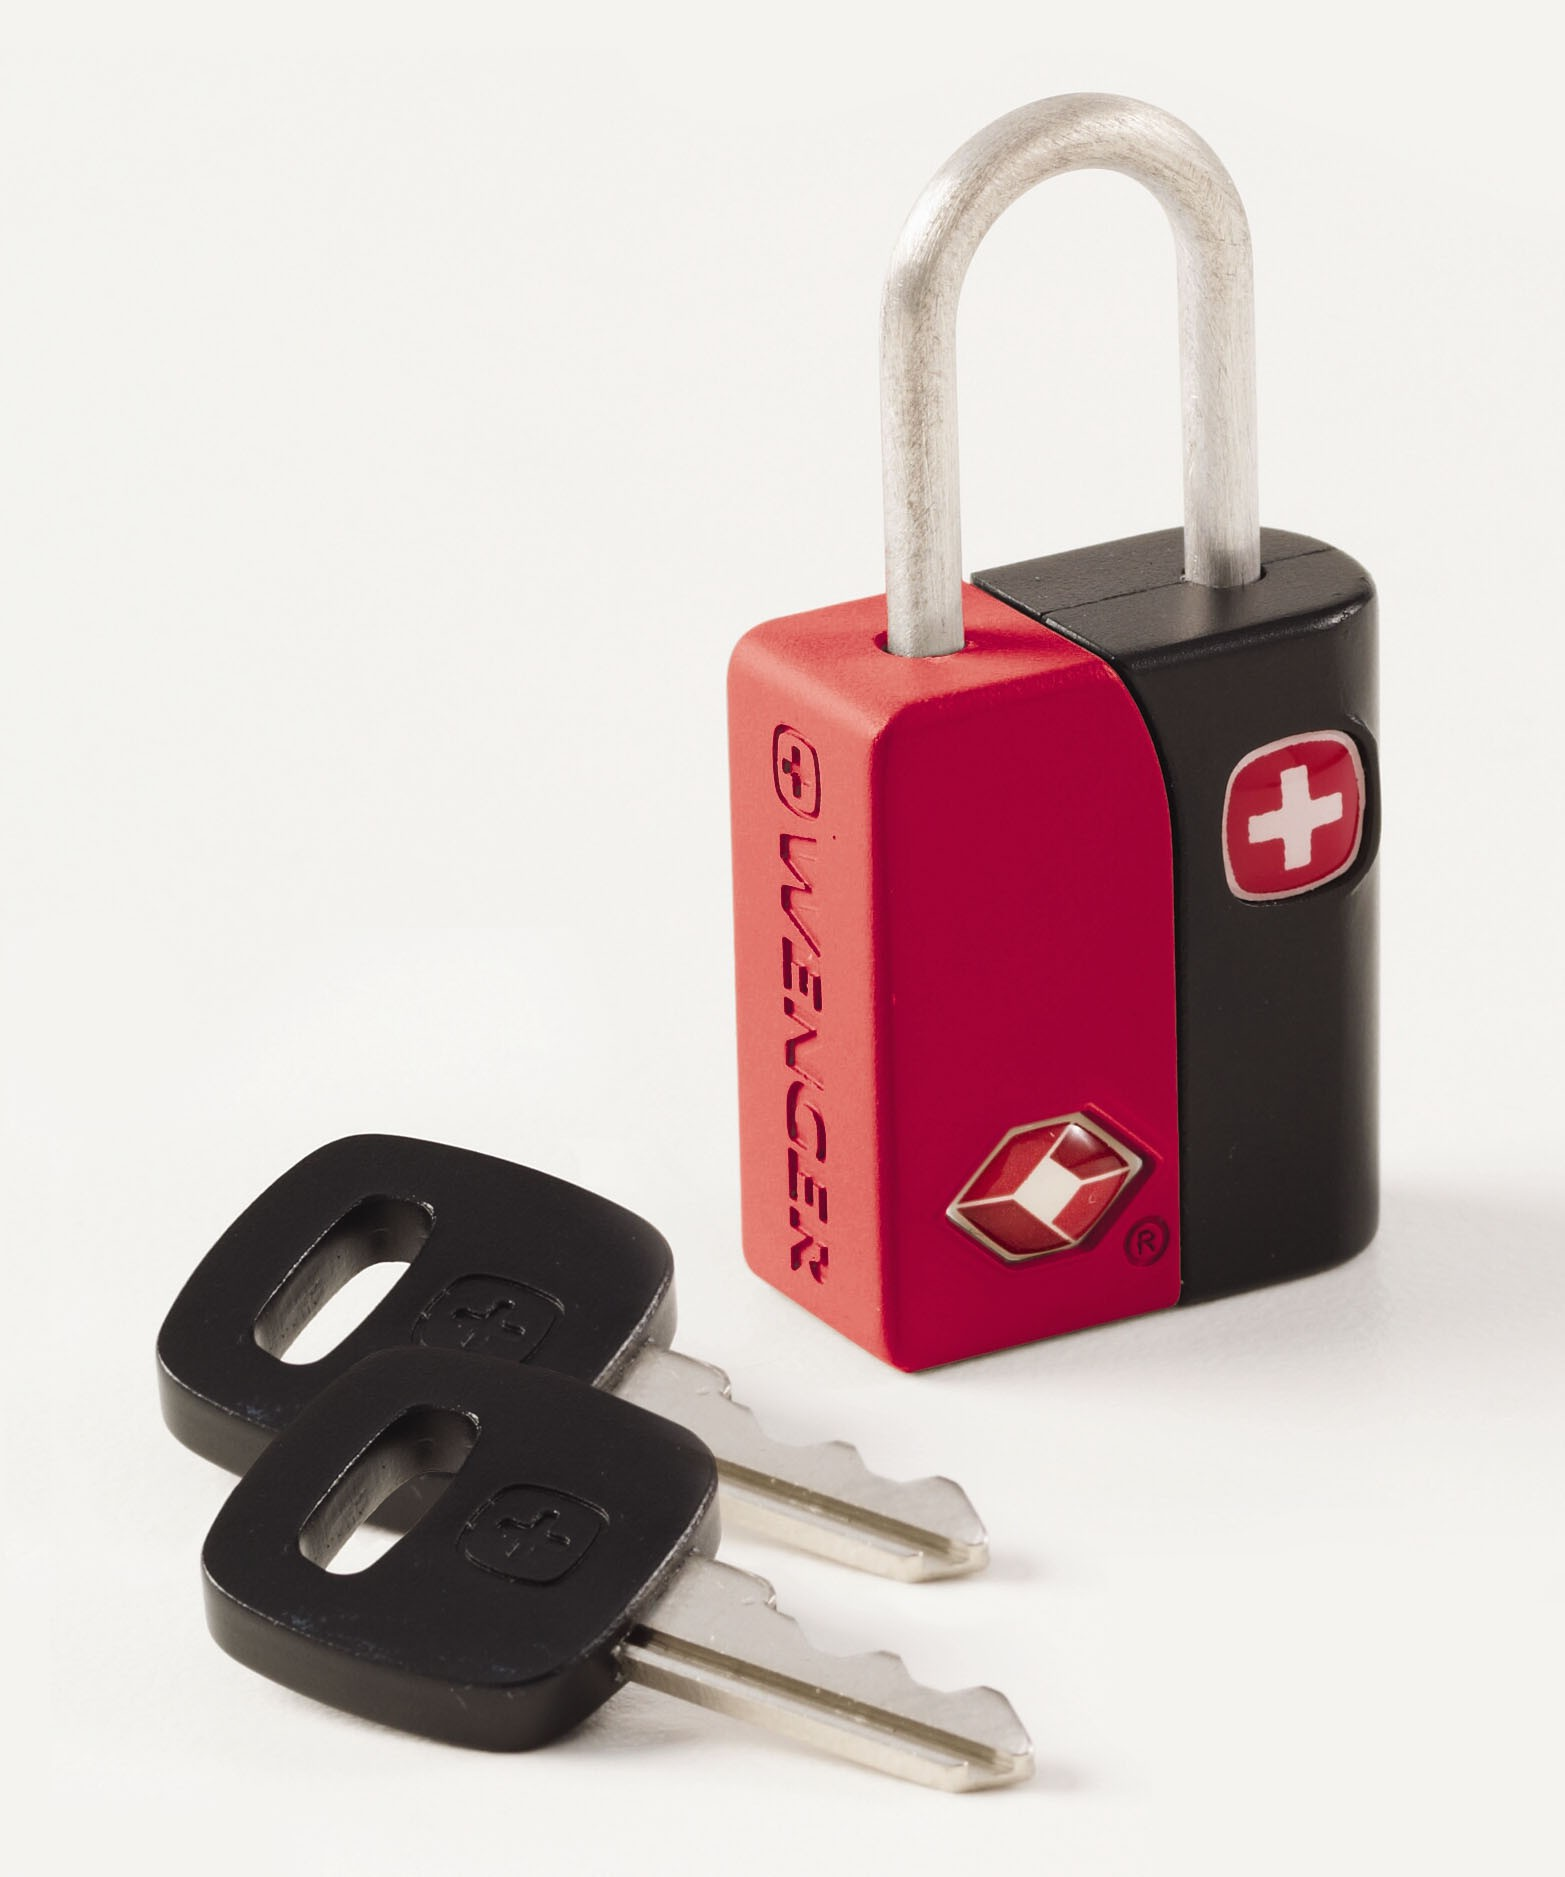 Wenger TSA Key Locks